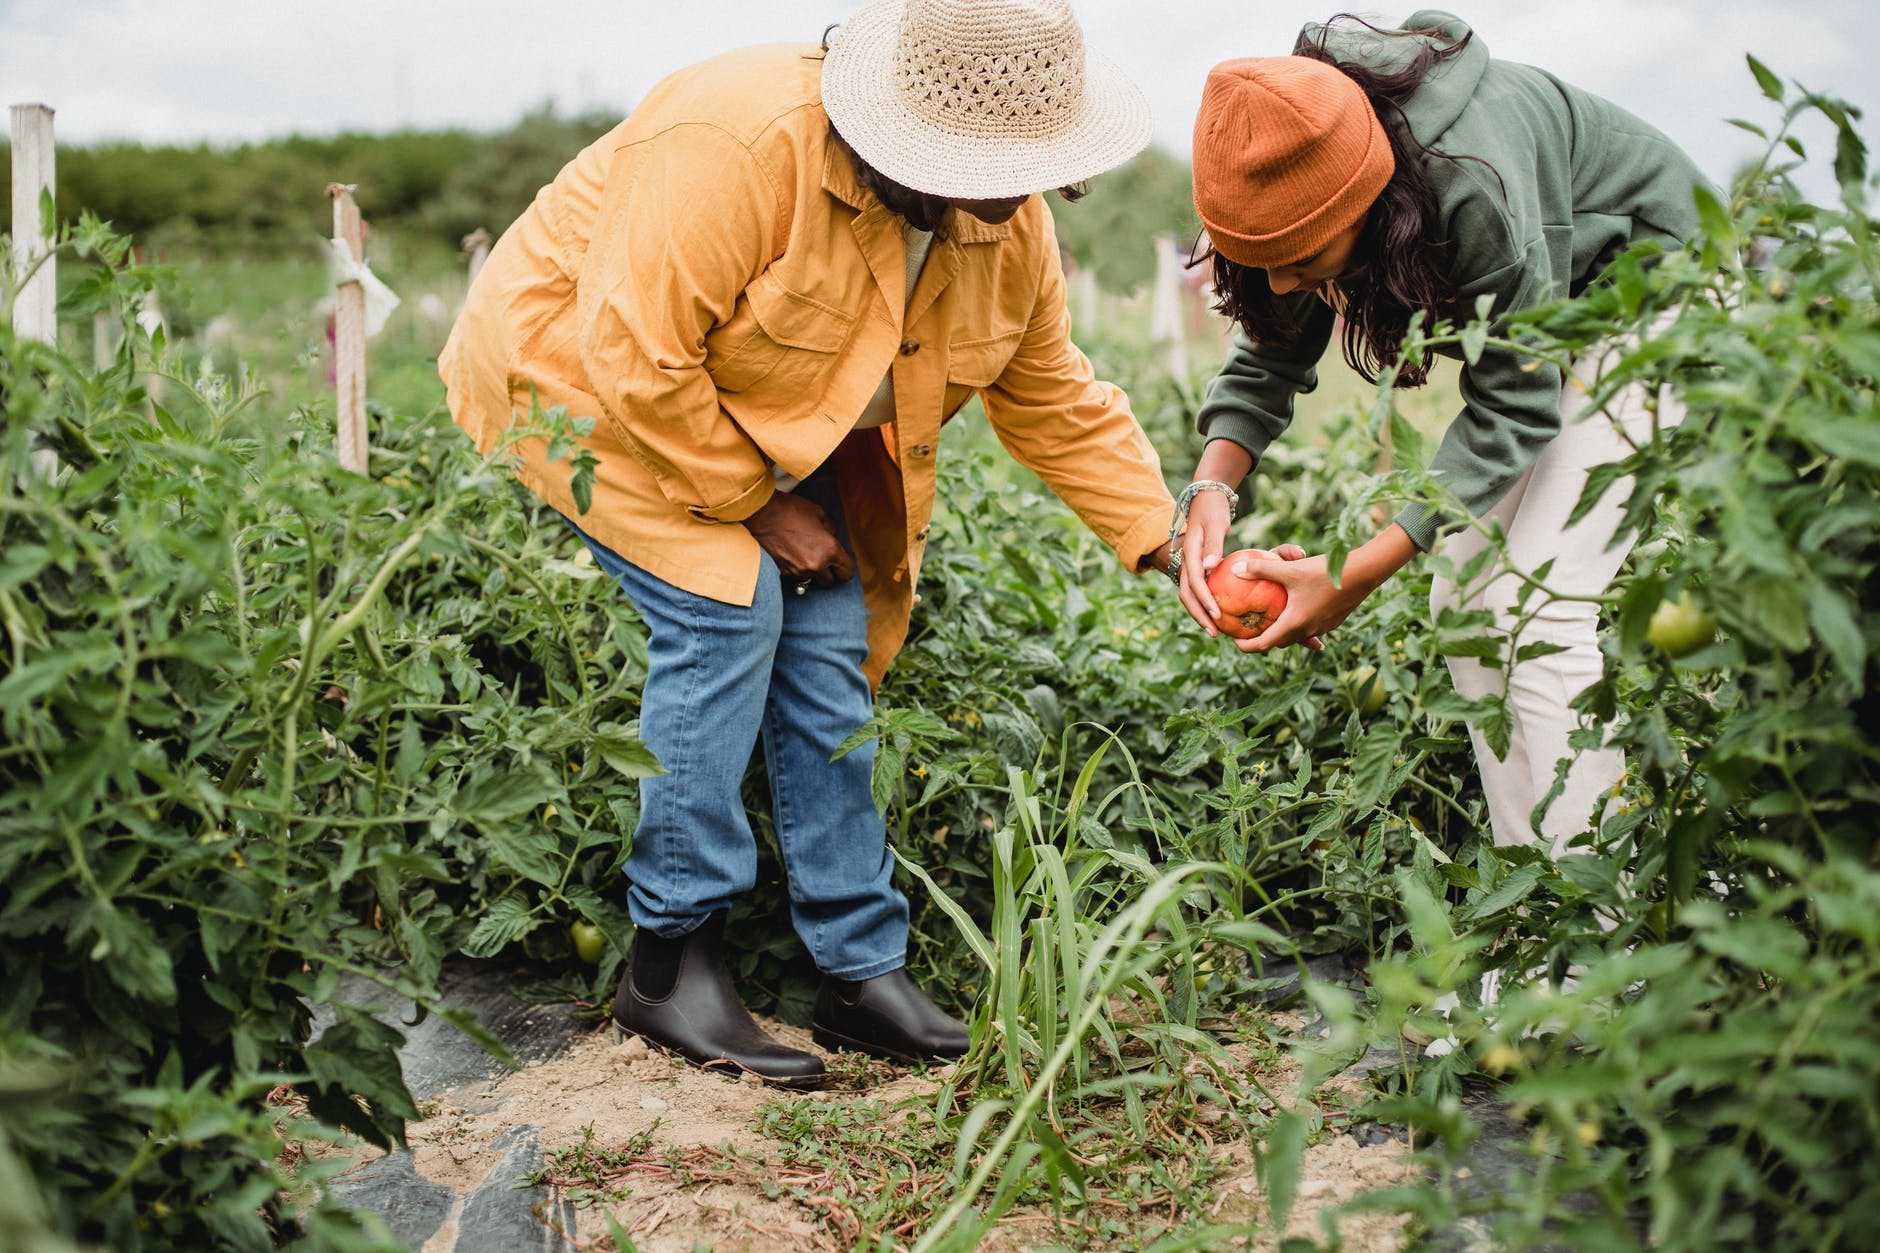 anonymous local female farmers picking vegetables during harvesting season in garden